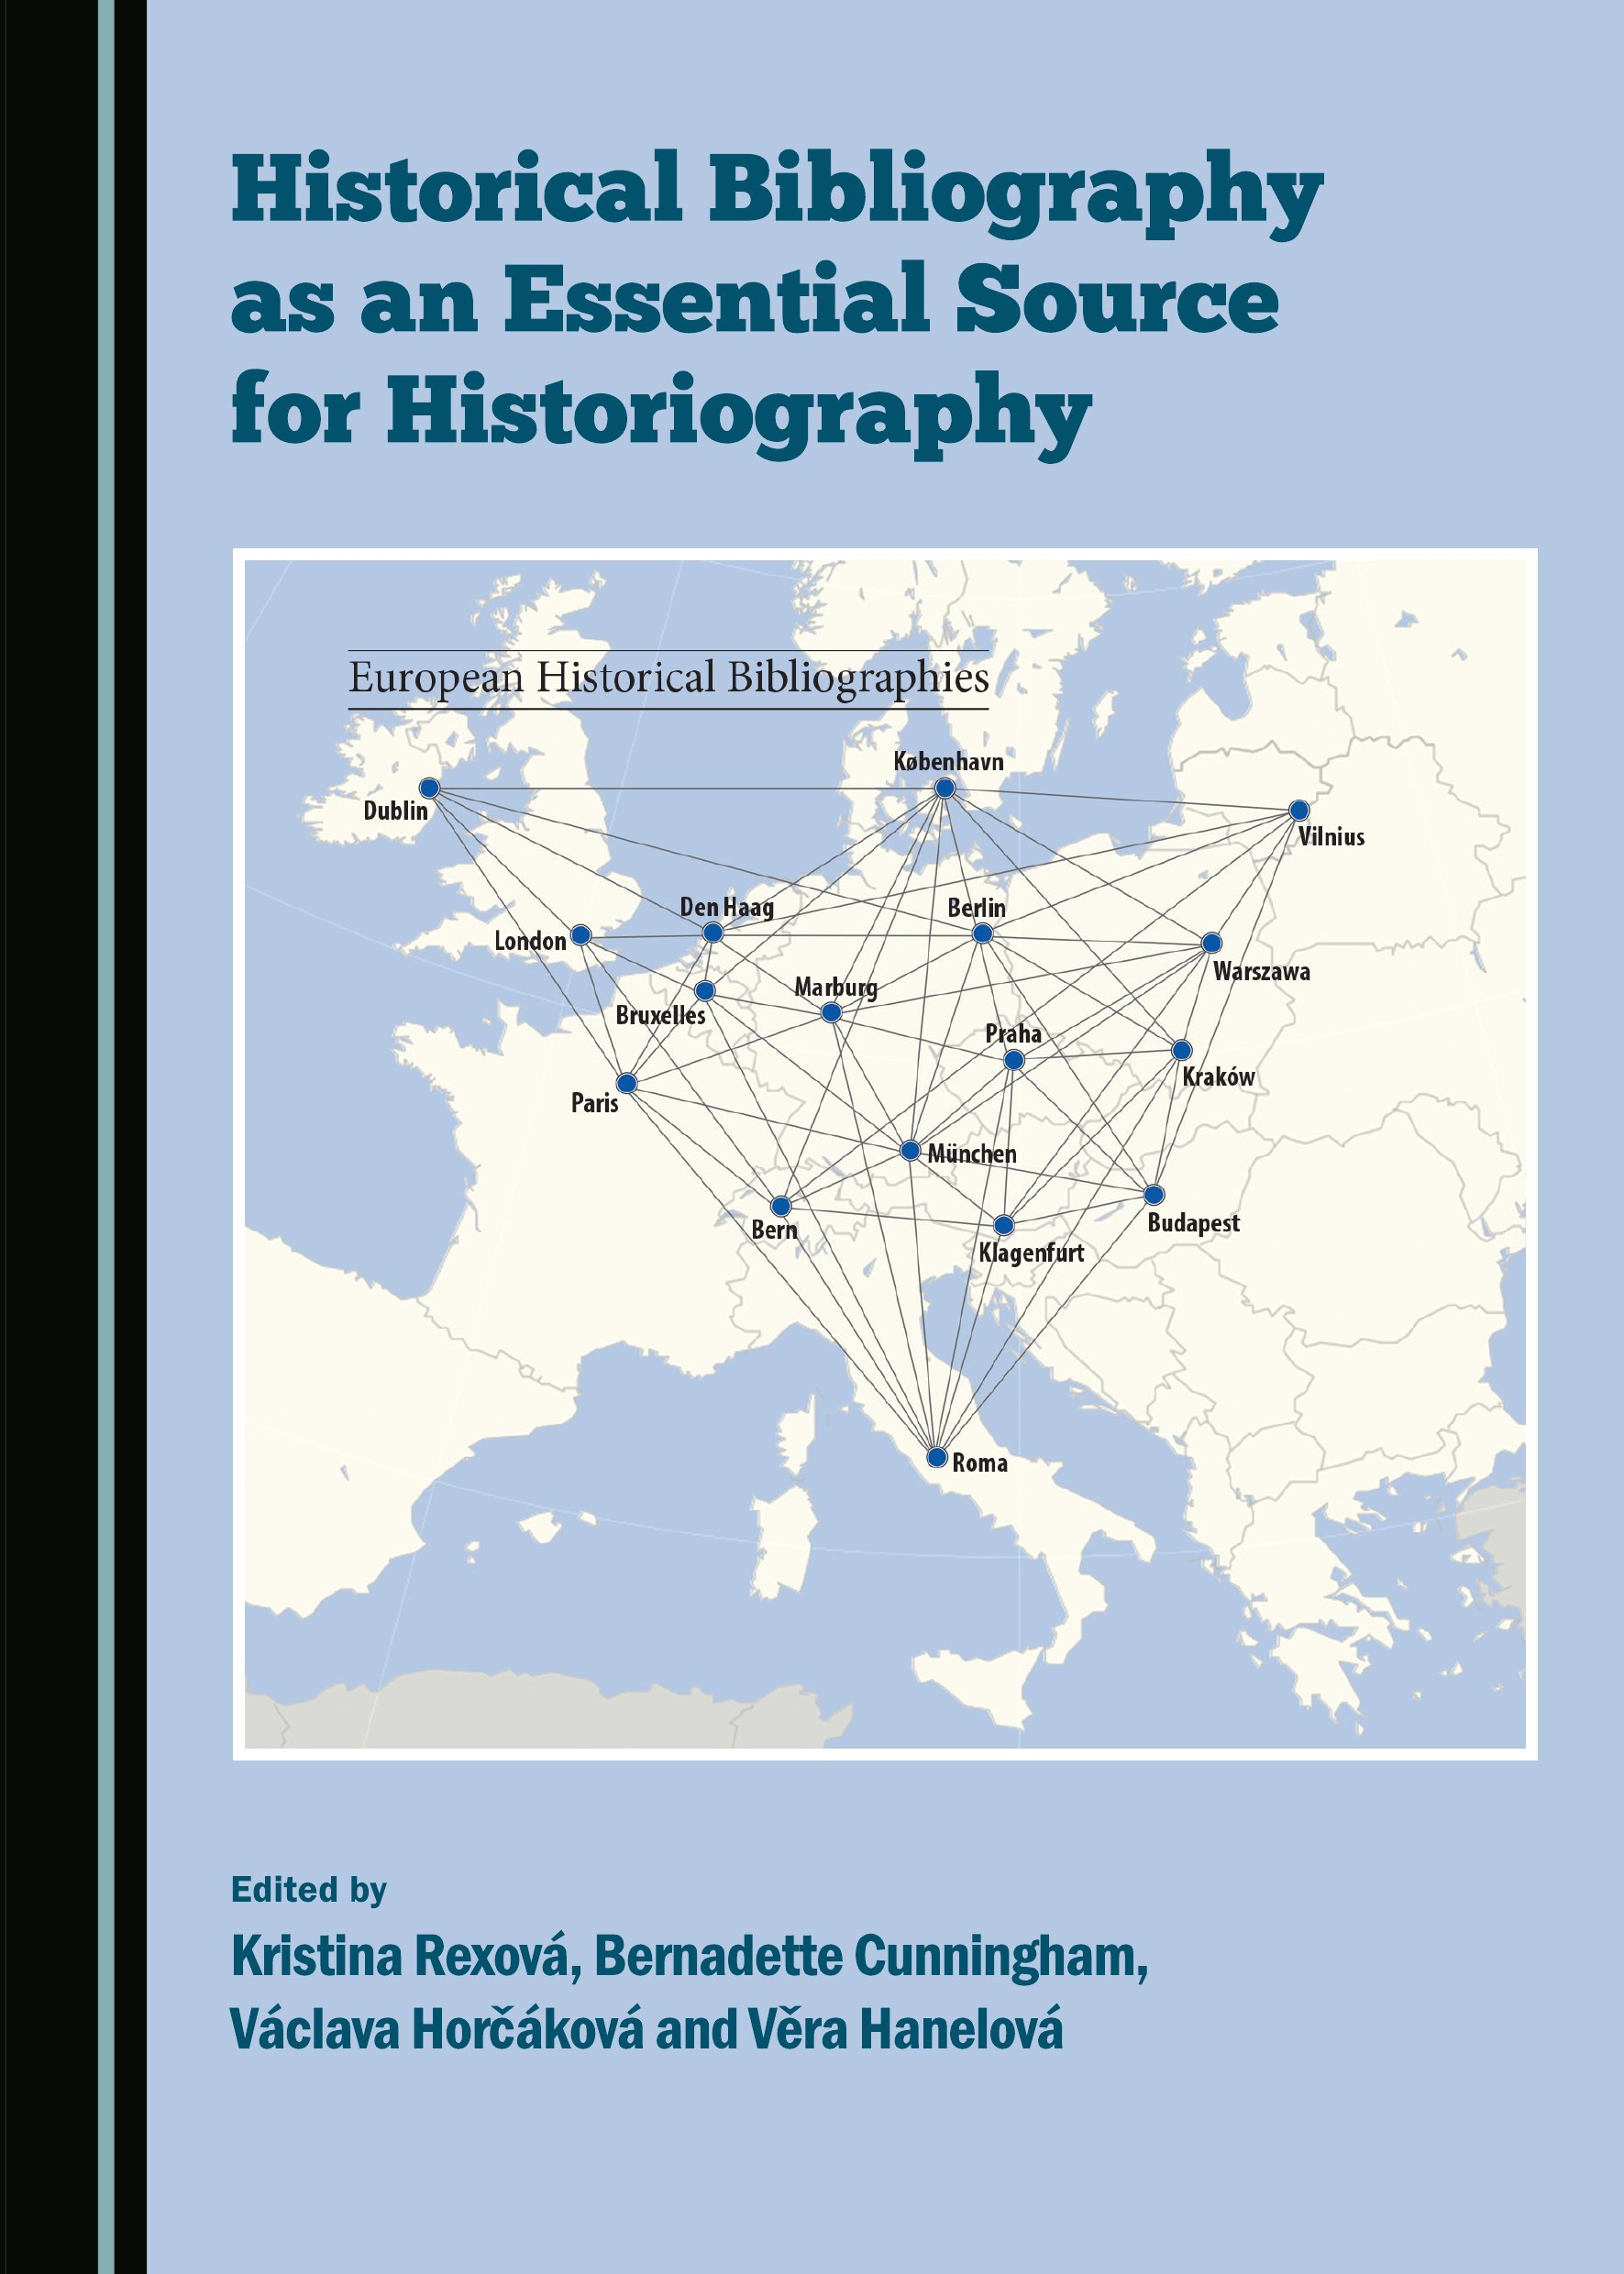 Historical Bibliography as an Essential Source for Historiography